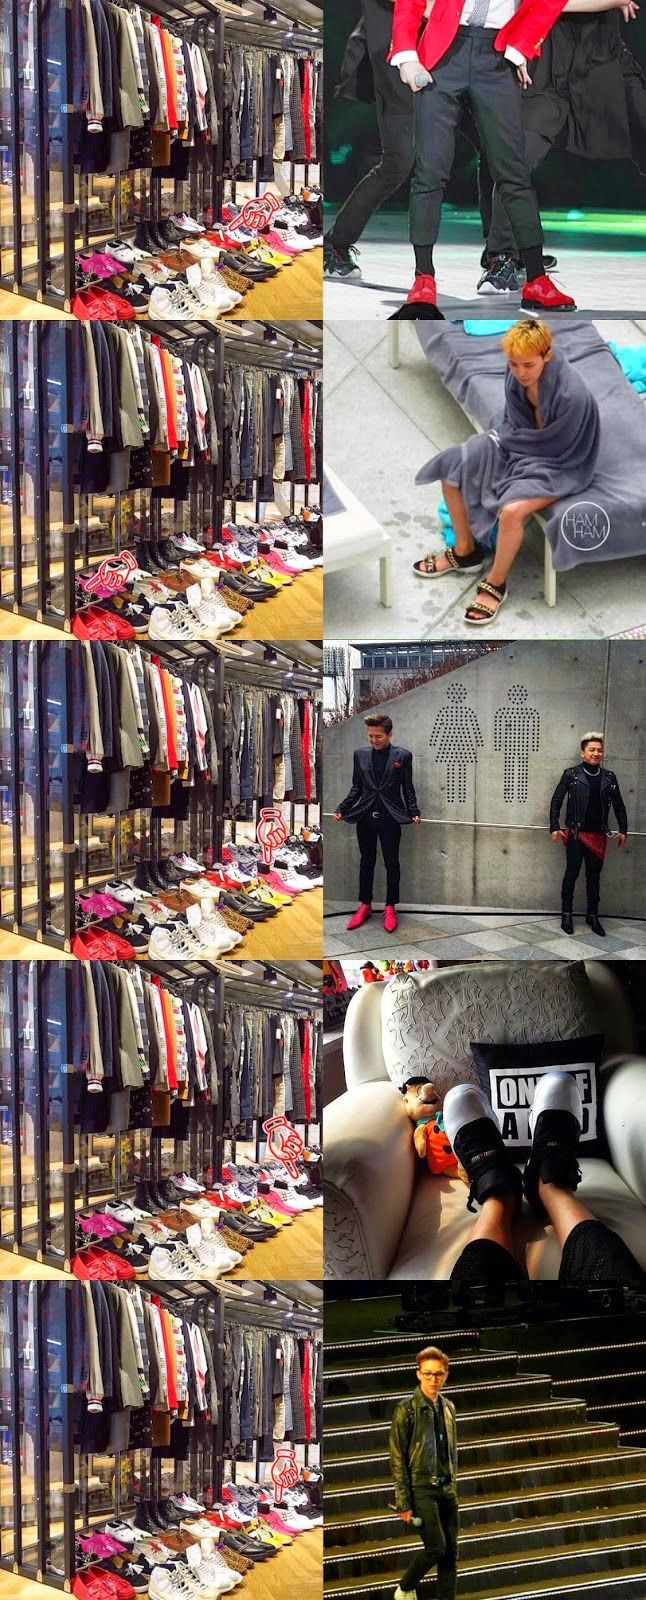 YG Artists Clothes including G-Dragon and Taeyang to Be Sold at Rare Market | bigbangupdates